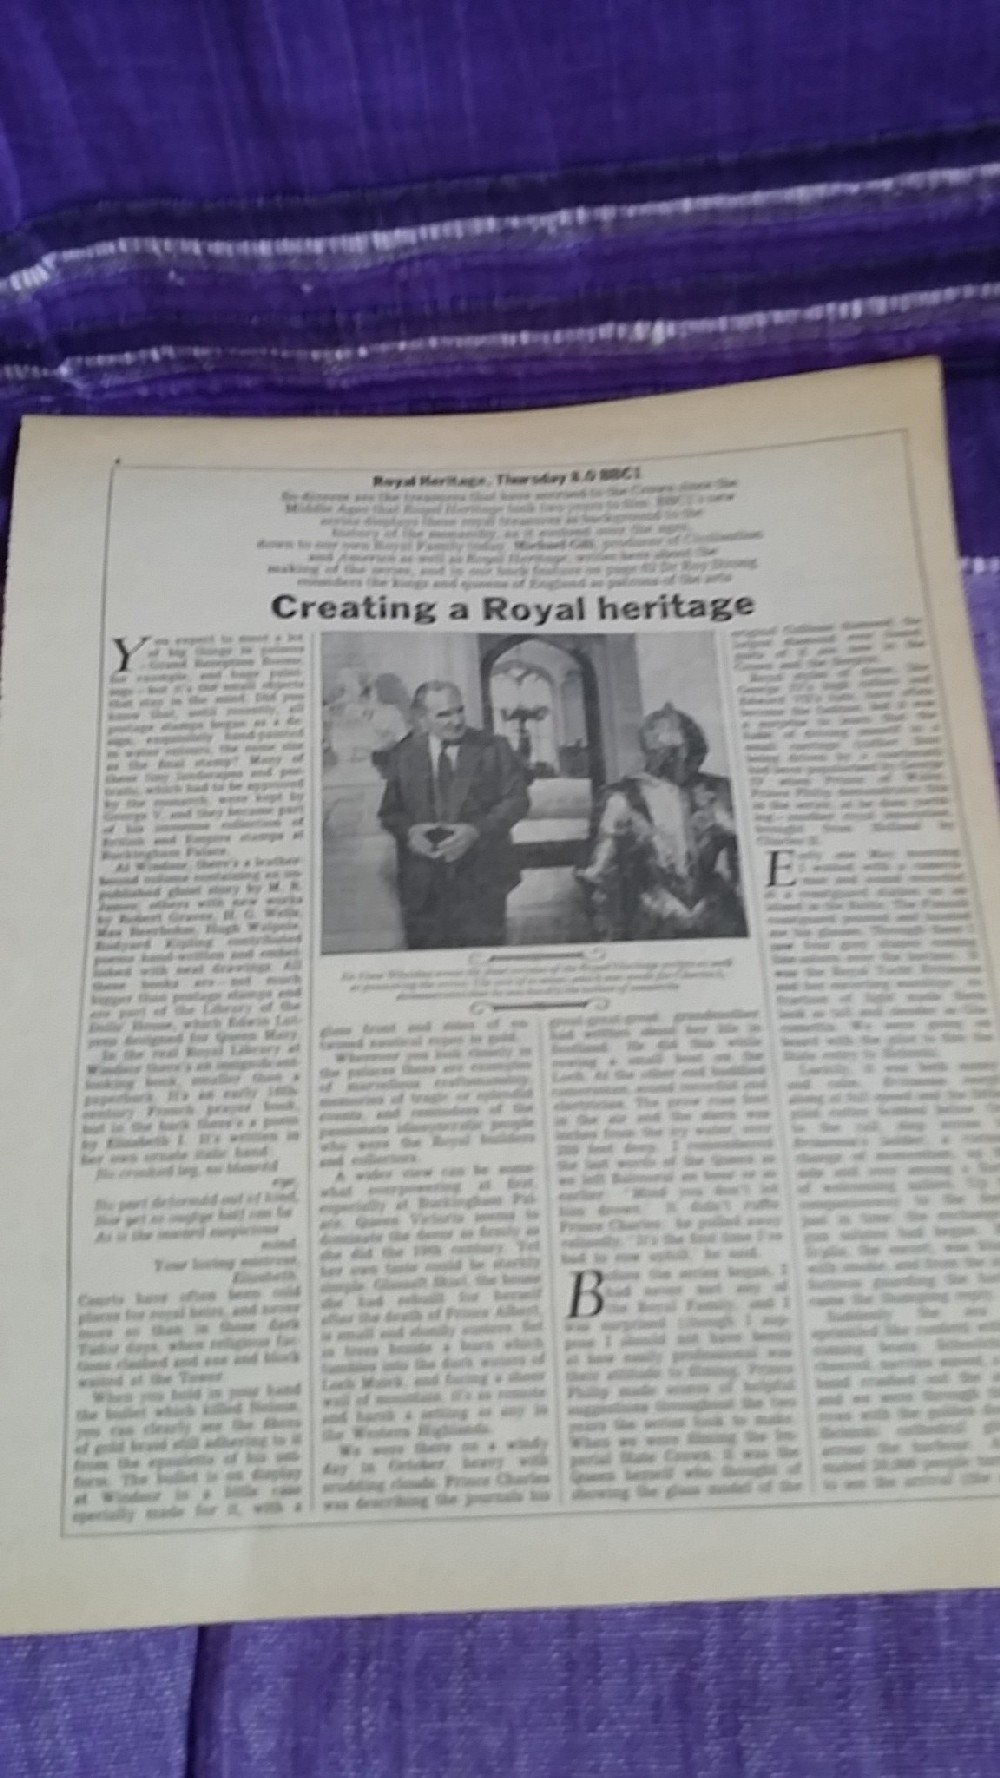 1924-1974. Fifty Years of Royal Broadcasts (Double LP) BBC record+ booklet, magazine cut outs + Letters from the PALACE